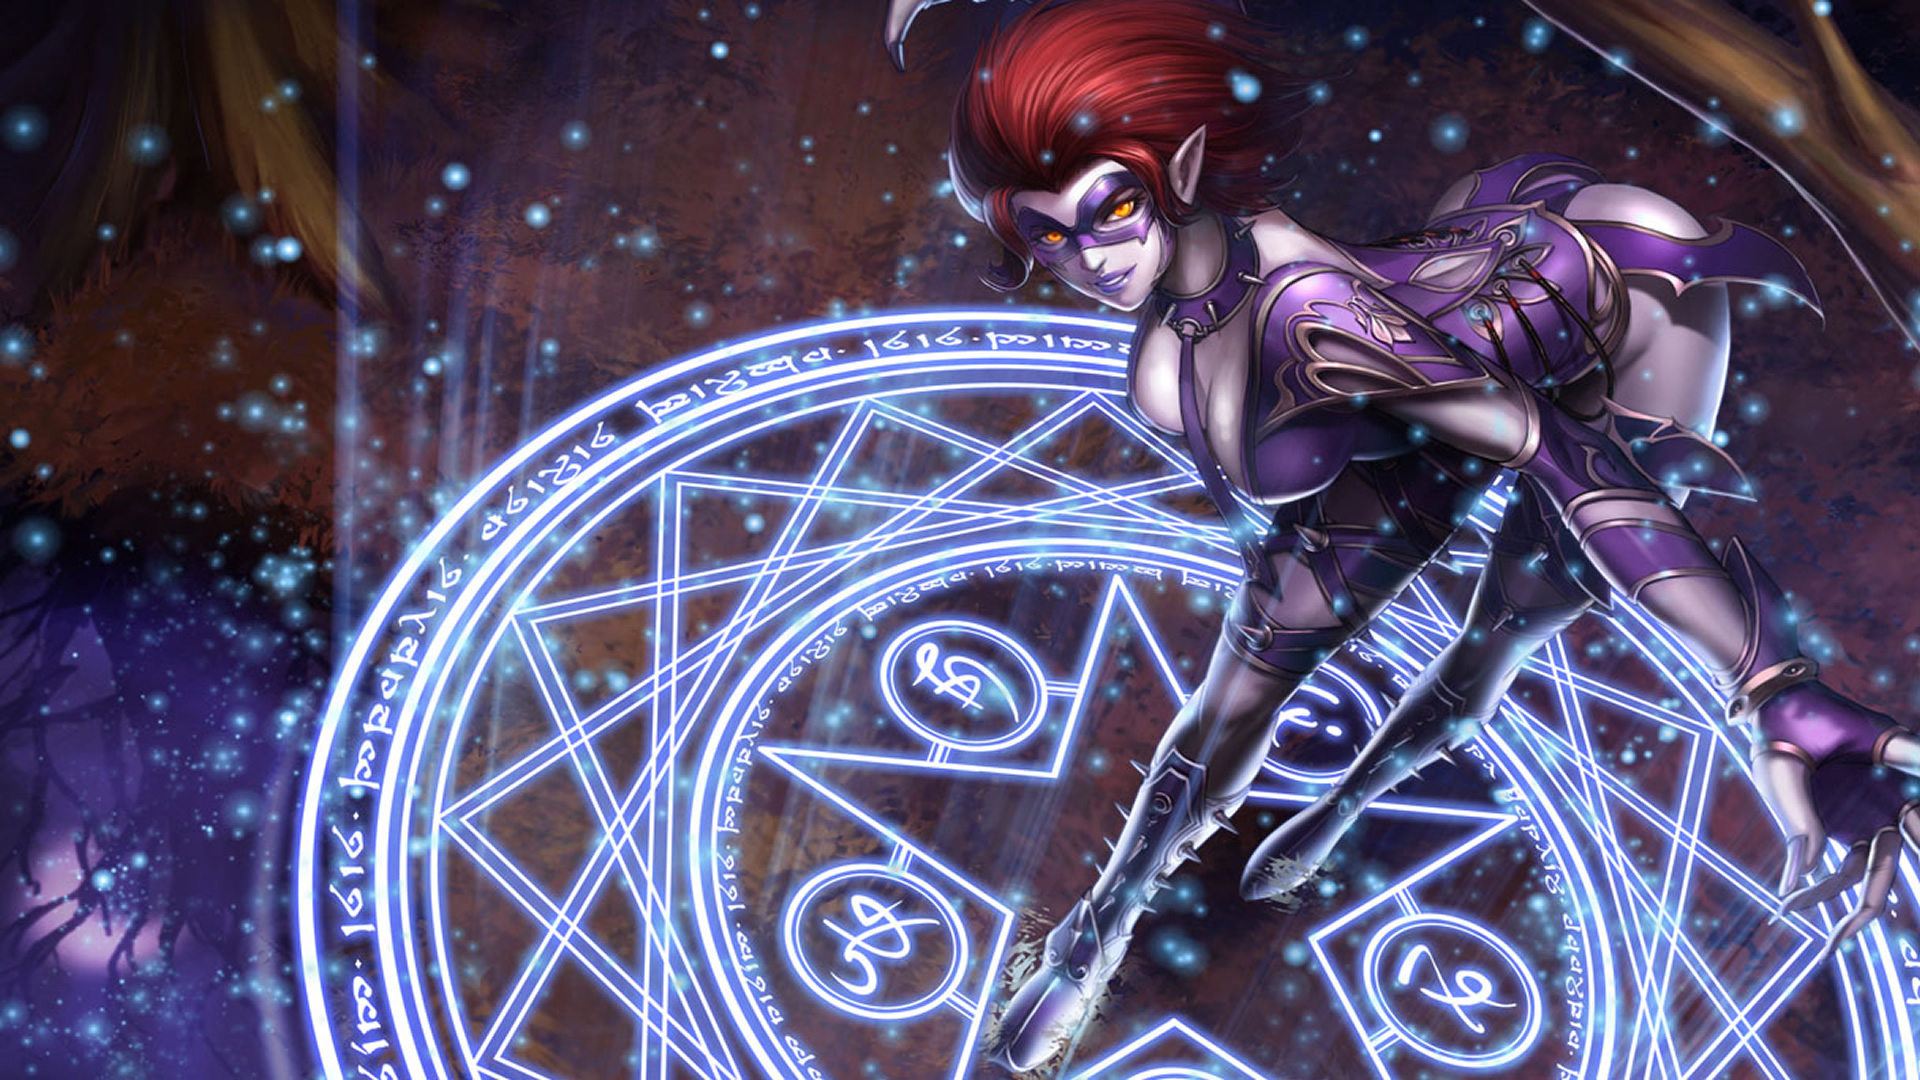 Masquerade Evelynn Chinese Wallpaper - LeagueSplash